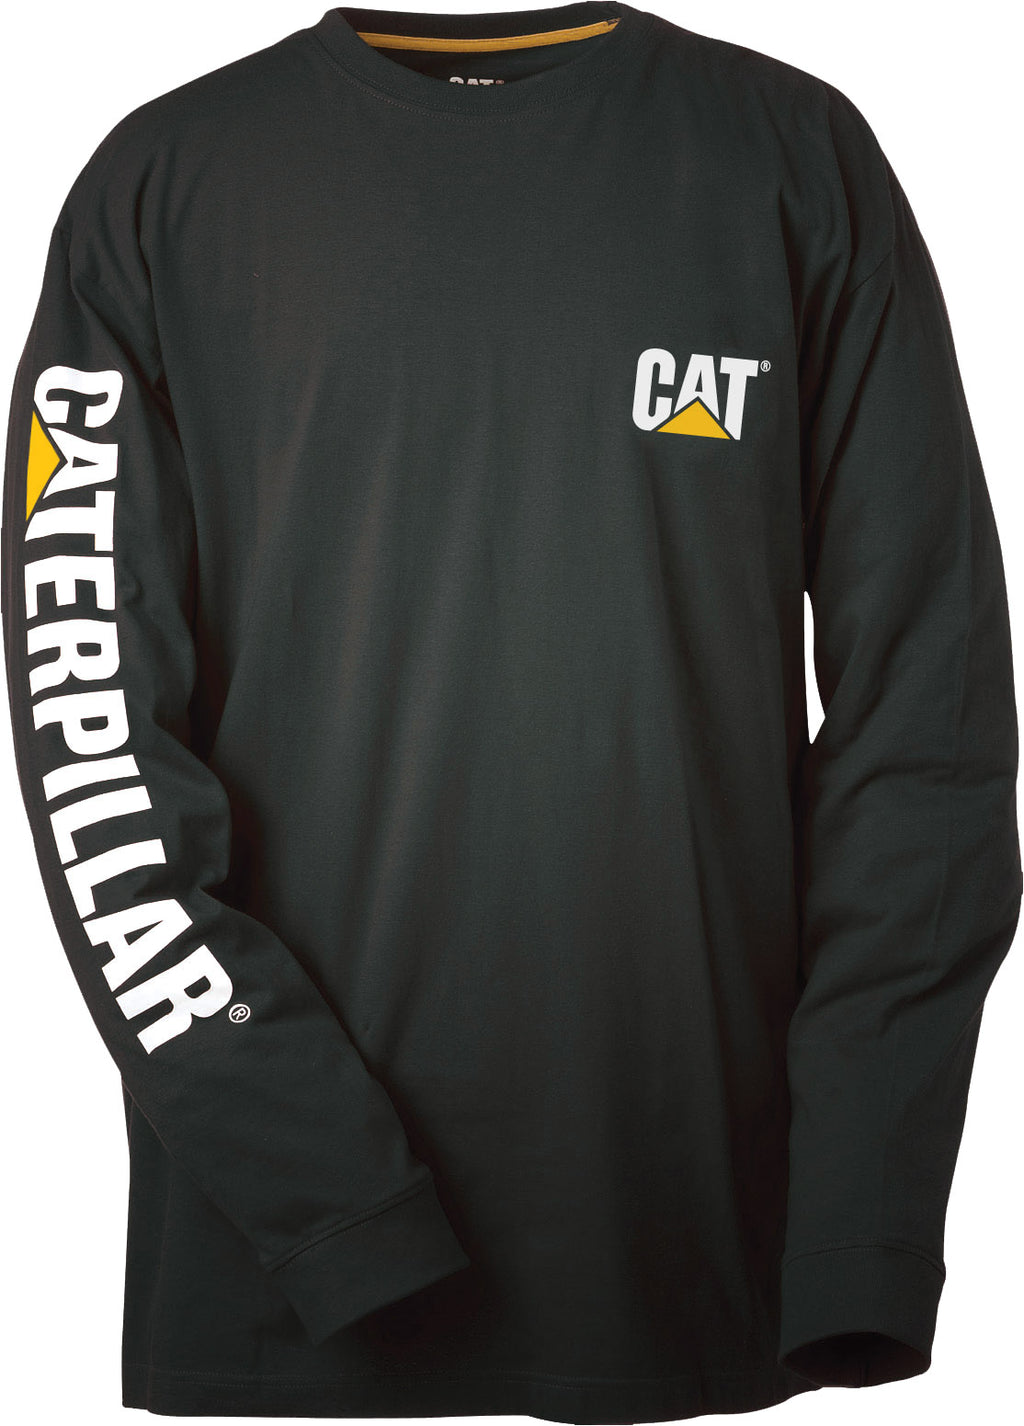 T-Shirt Cat Long Sleeve Trademark Banner Black Med